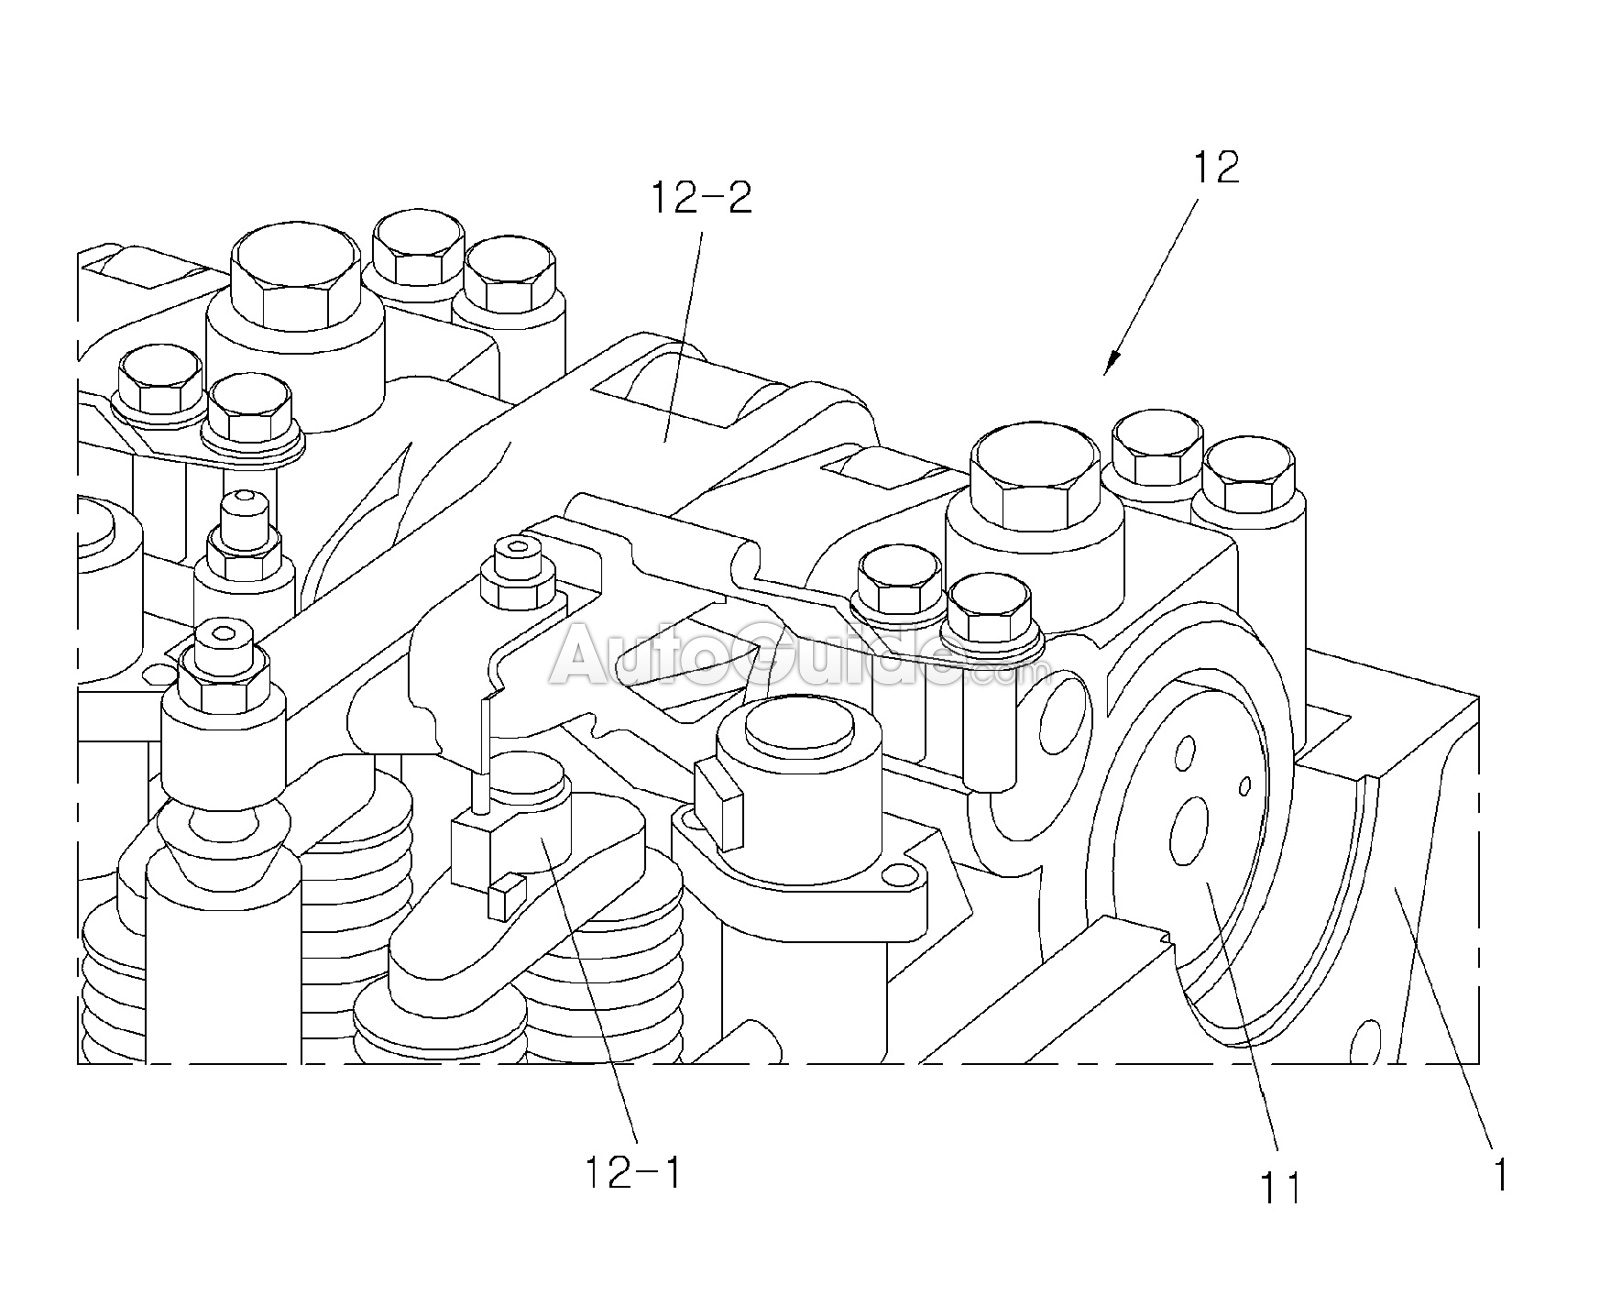 Hyundai Turns To Outdated Technology For New Three Cylinder Engine Diagram Intake Area Patent 4